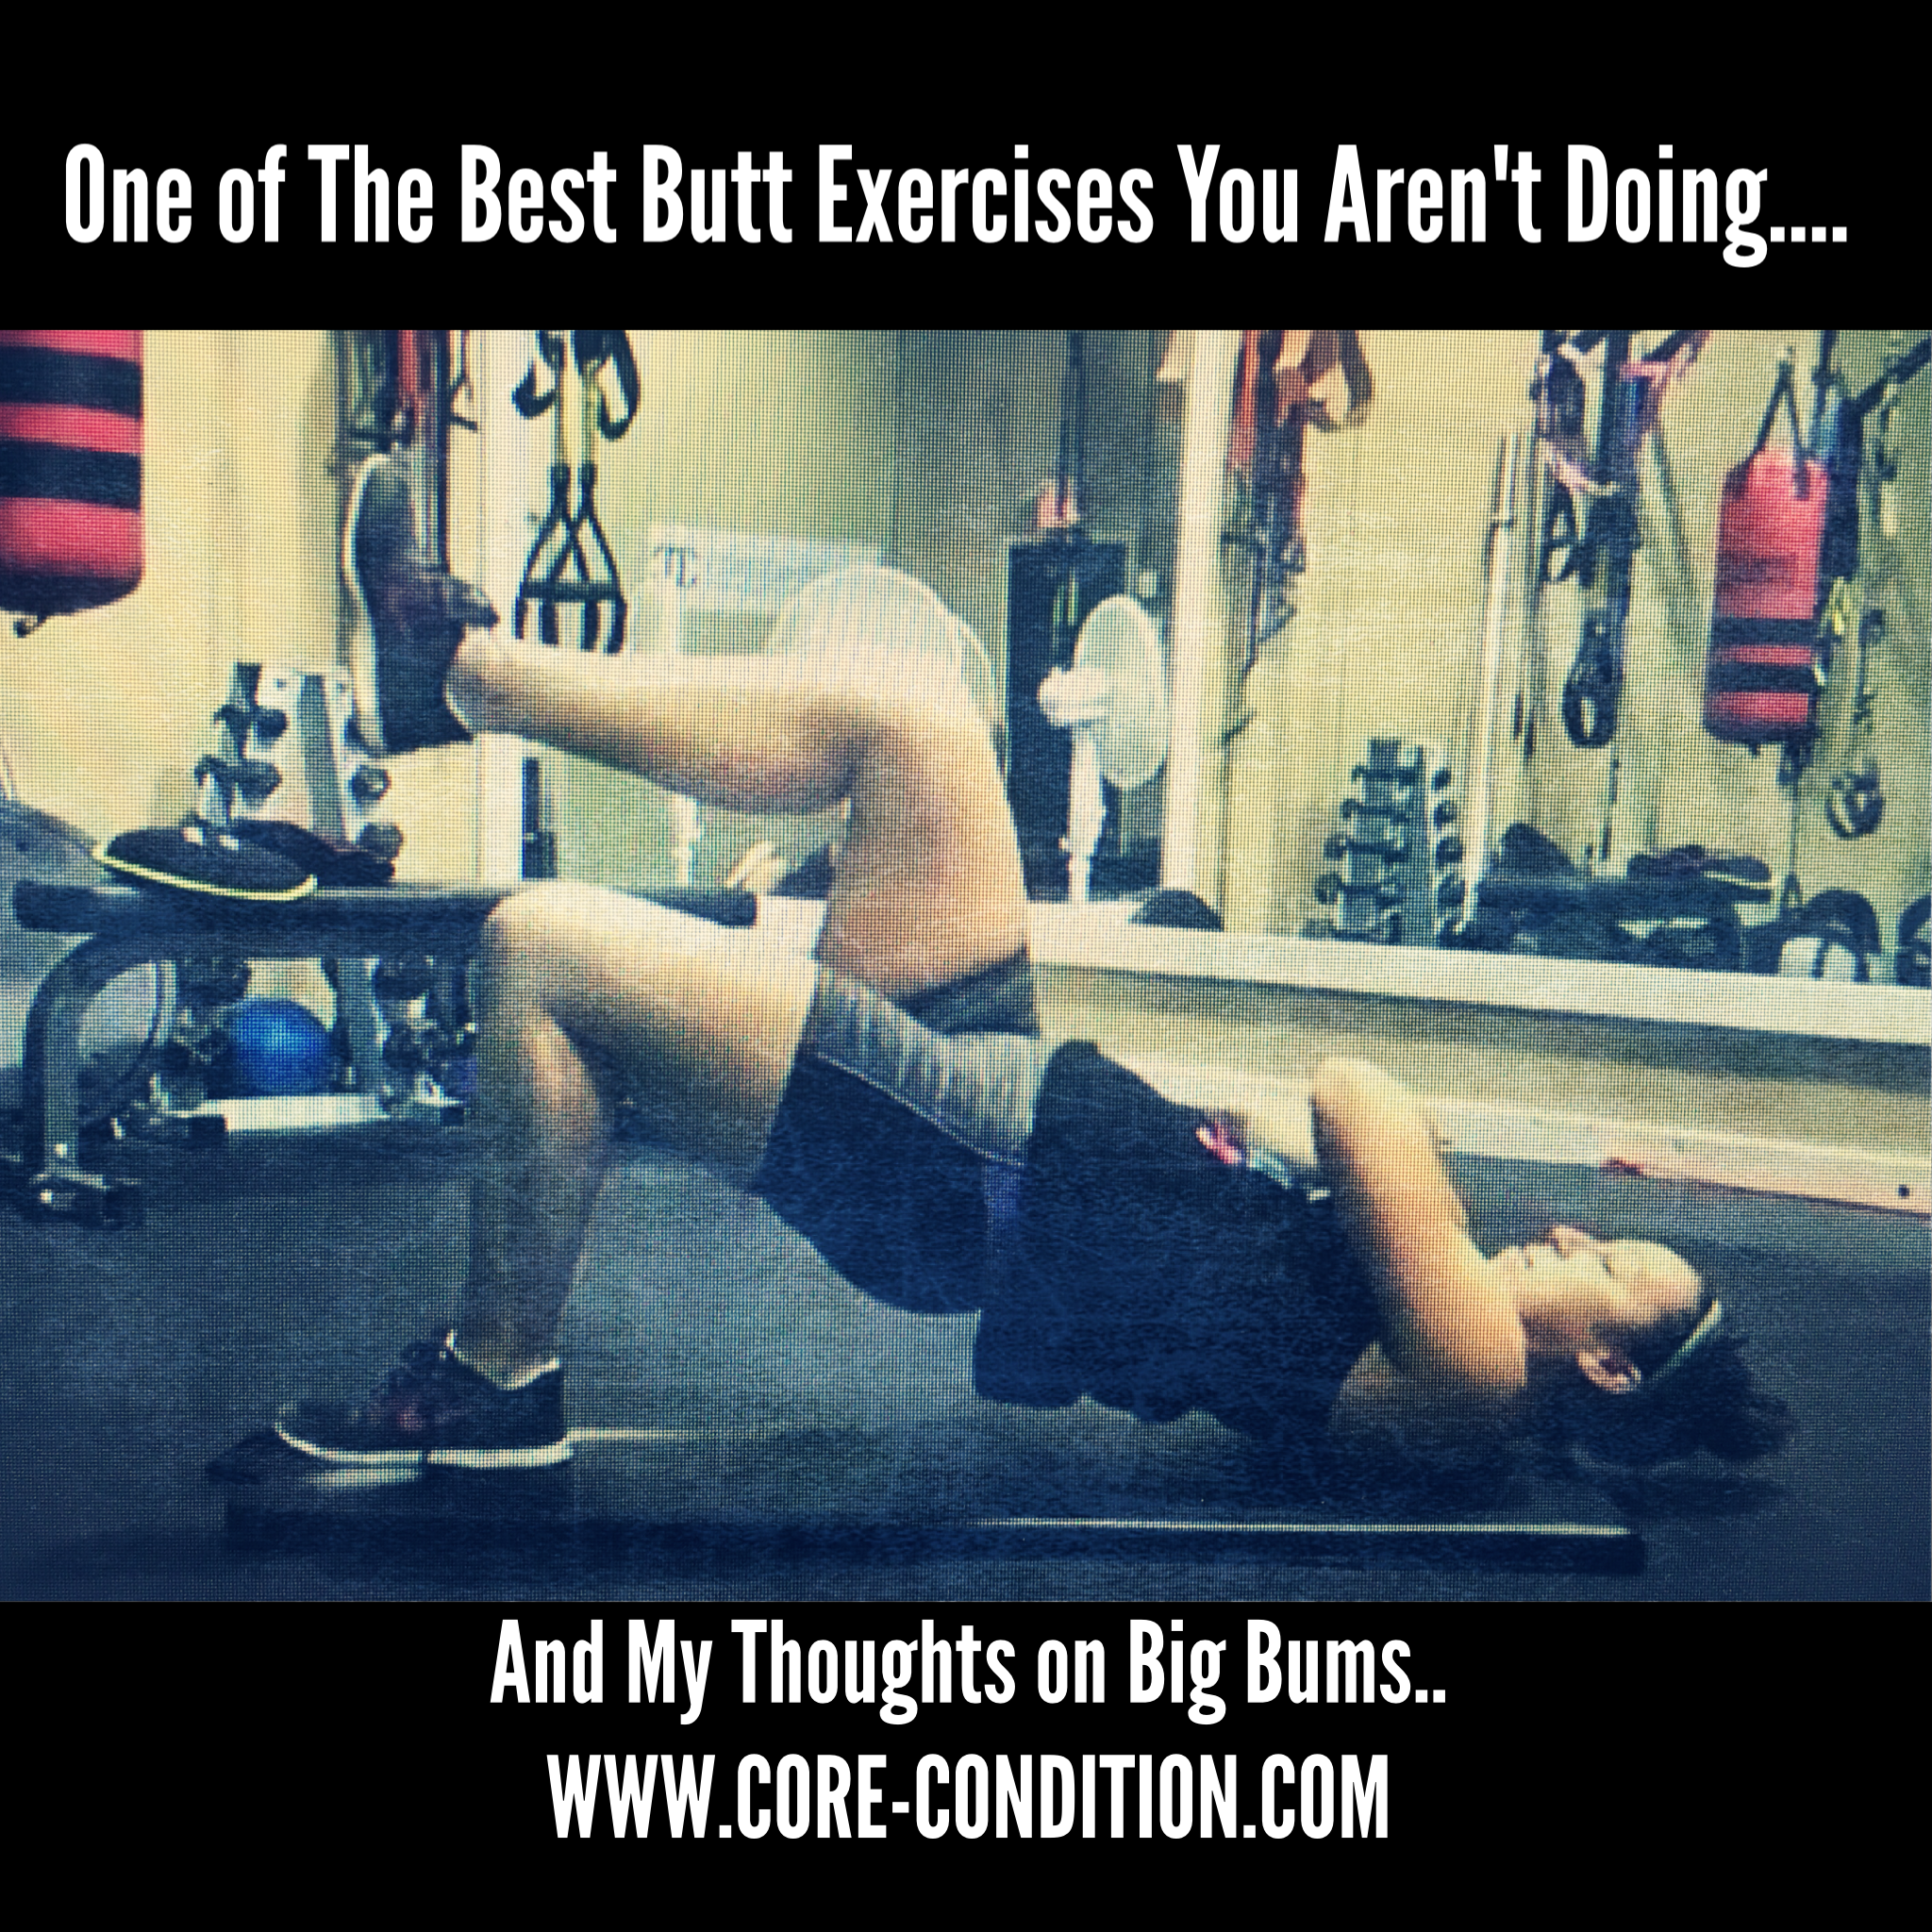 One of The Best Butt Exercise You Are Not Doing… And My Thoughts On Big Bums